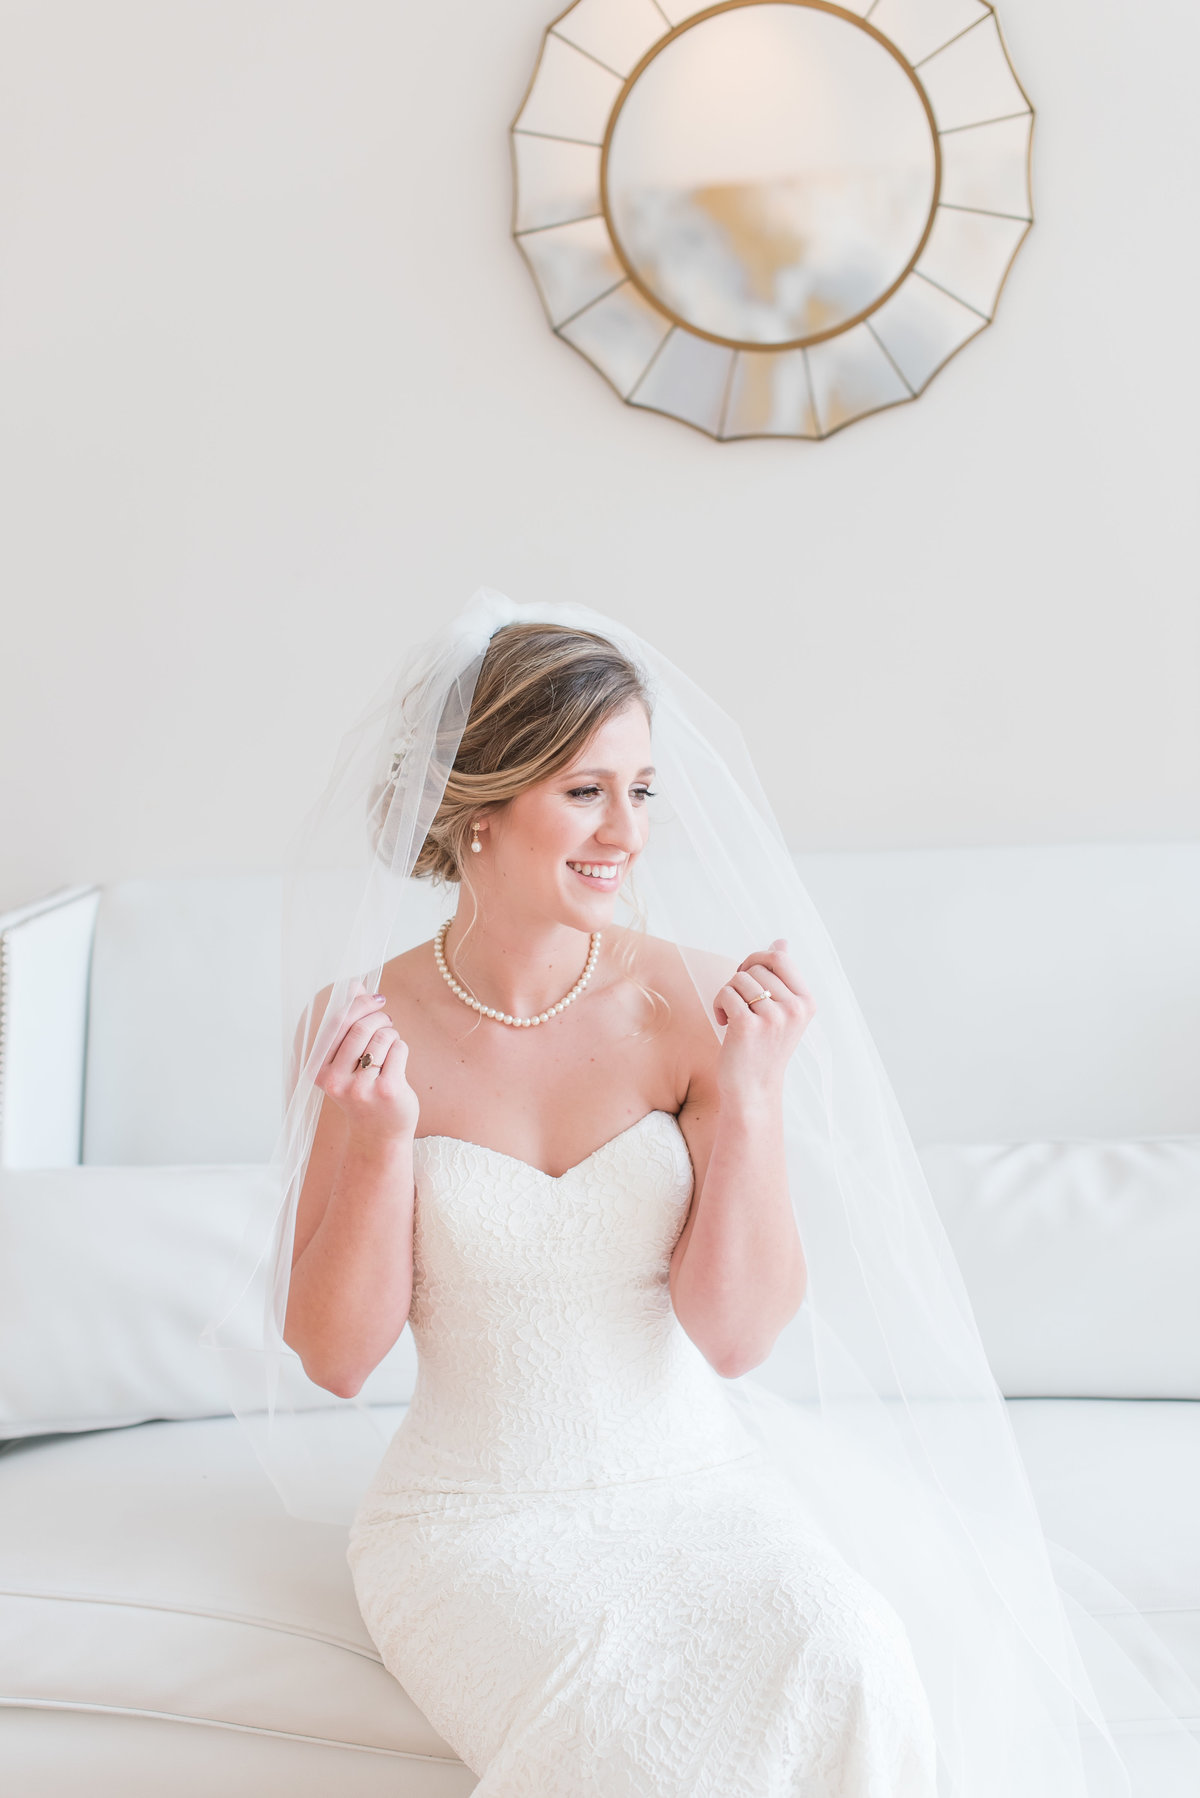 A bride wearing a strapless dress with cathedral length veil in front of a white wall and sitting down on a white couch smiling at the Glass Box at 230 in Raleigh